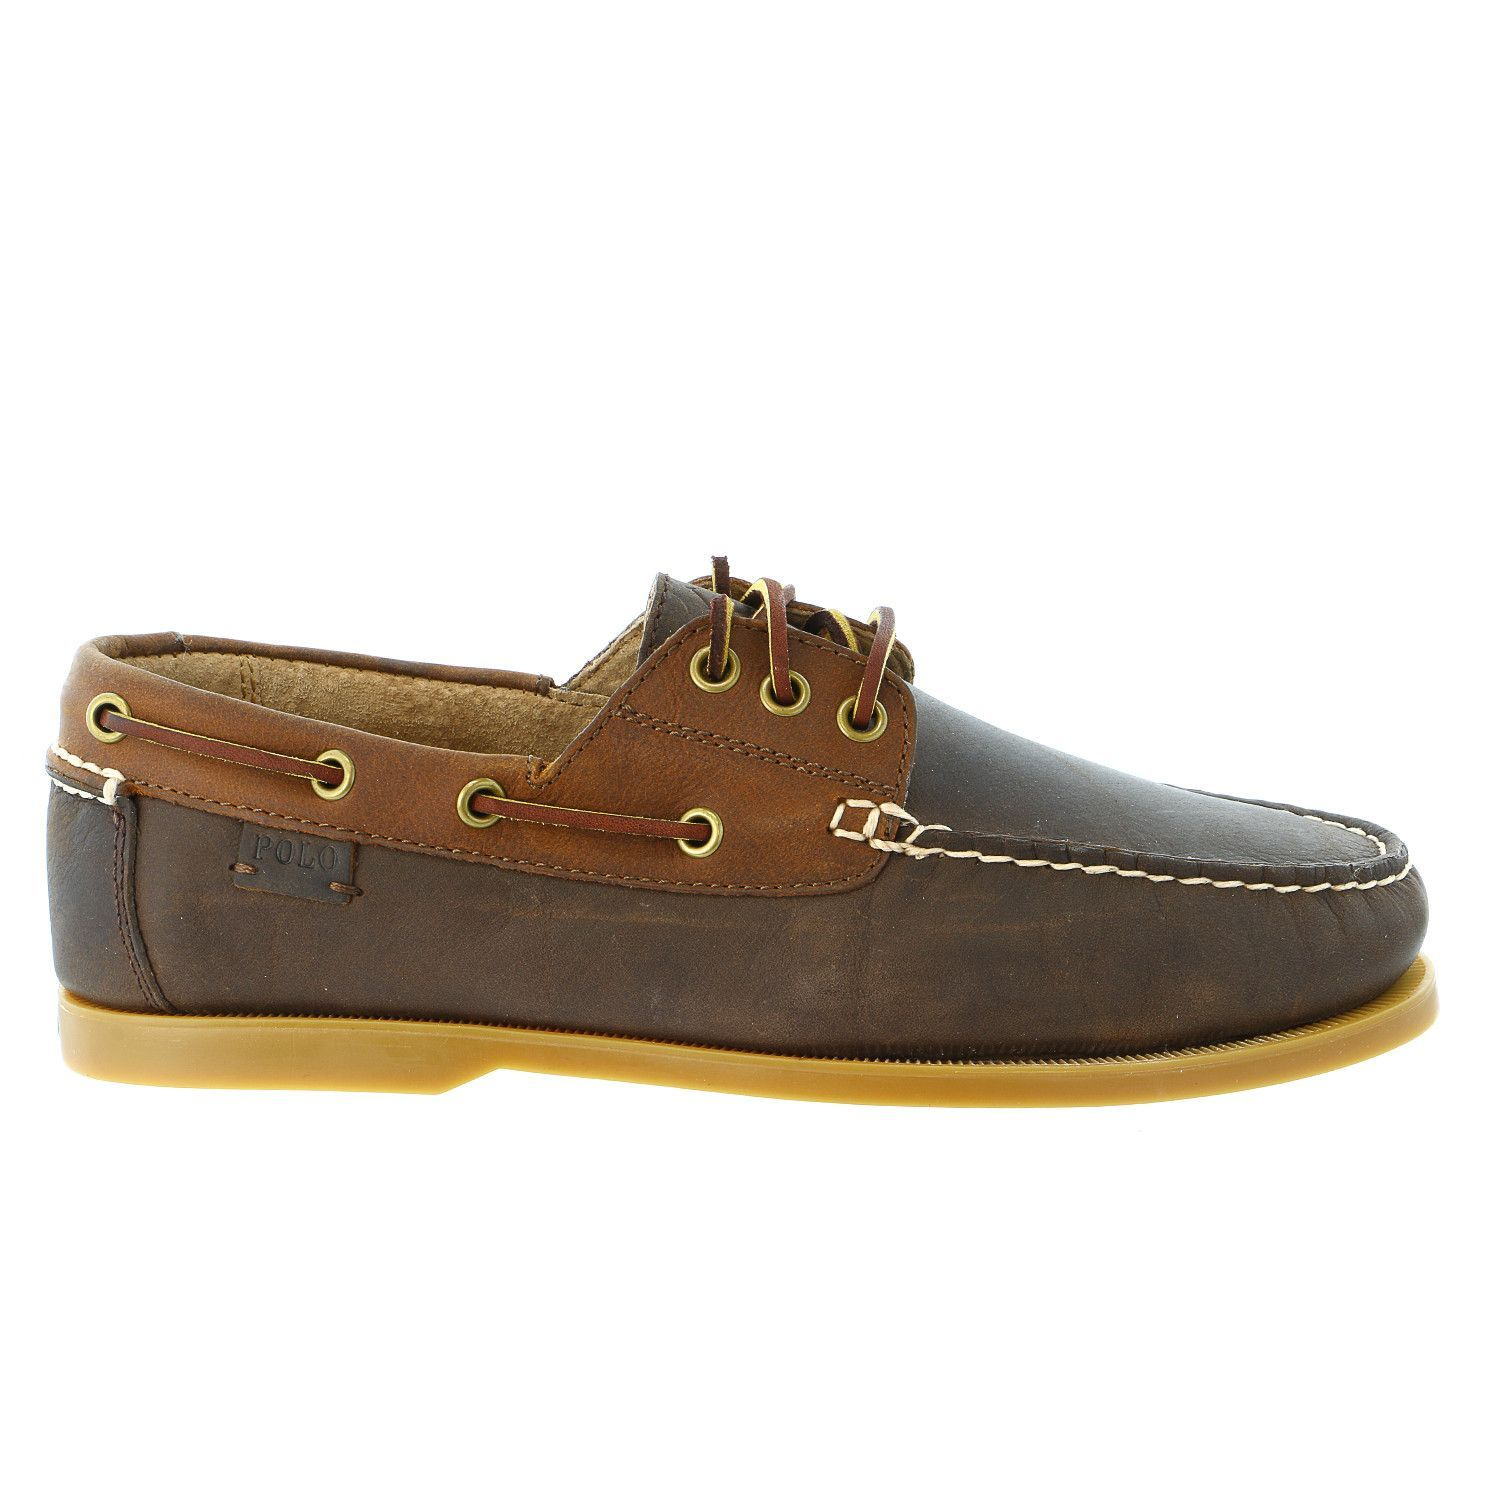 POLO Ralph Lauren Bienne II Moc Toe Oxford Casual Shoe - Mens